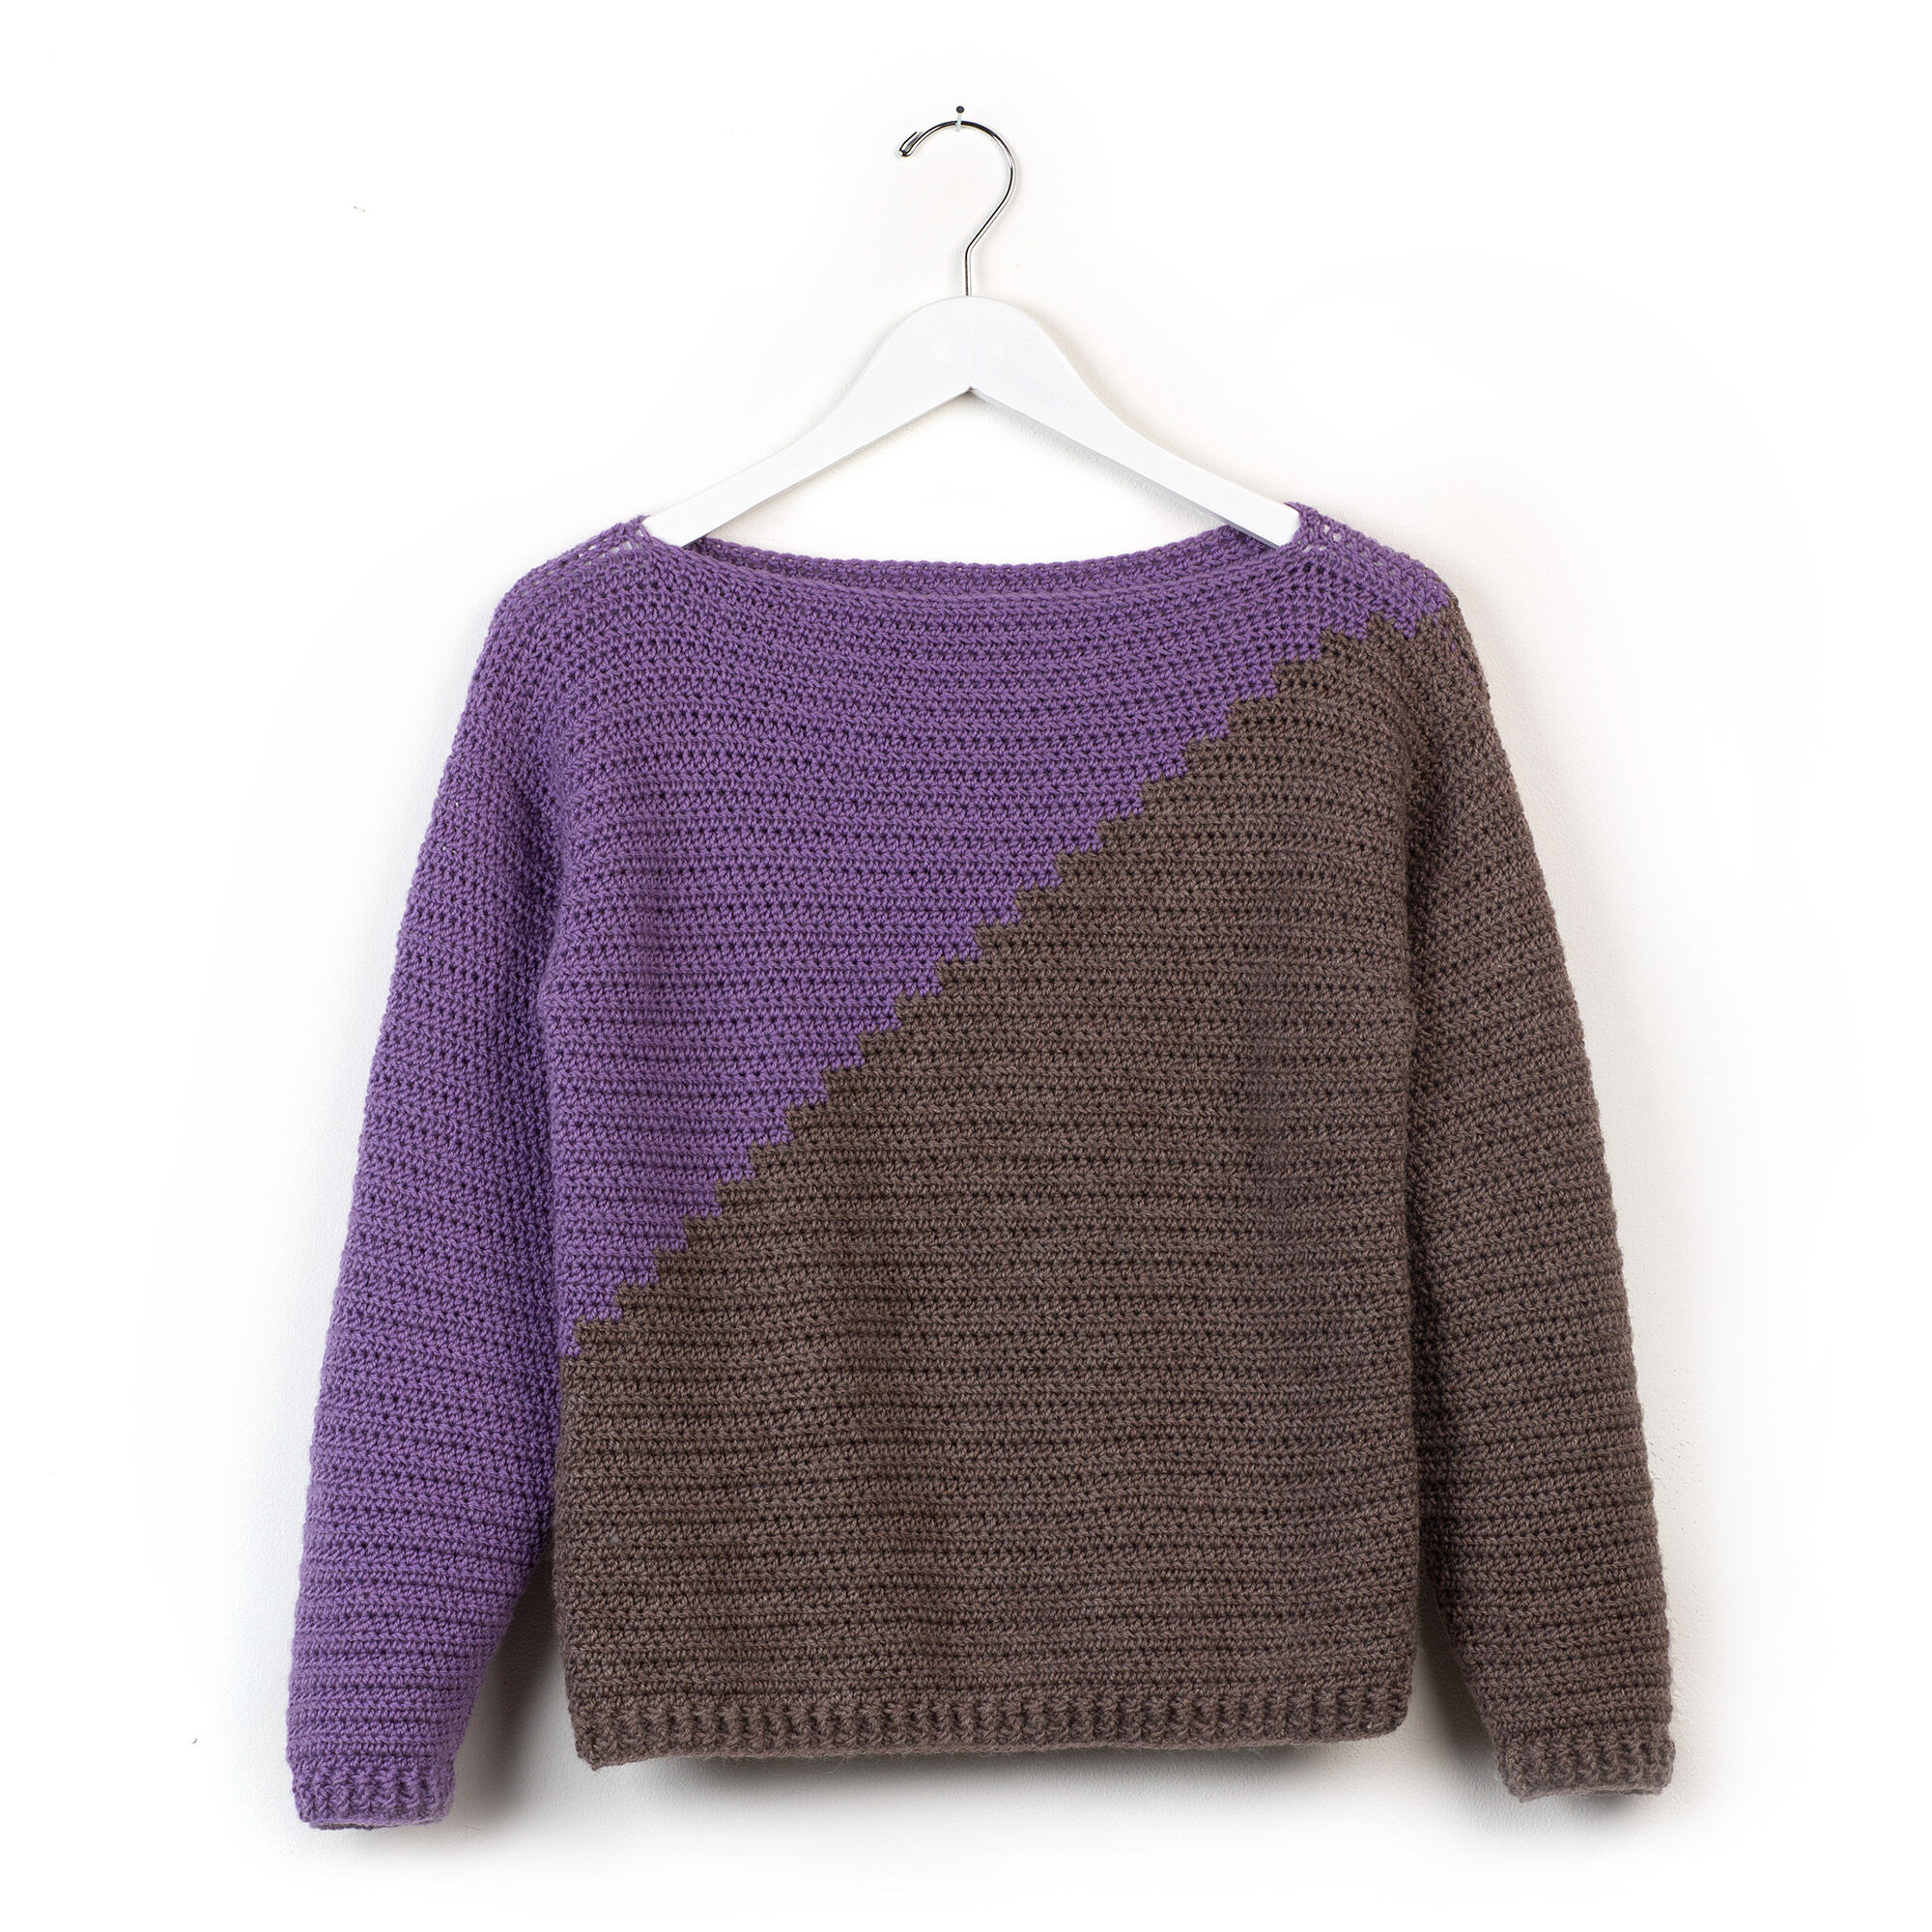 Patons Slanted and Enchanted Crochet Sweater, XS/S